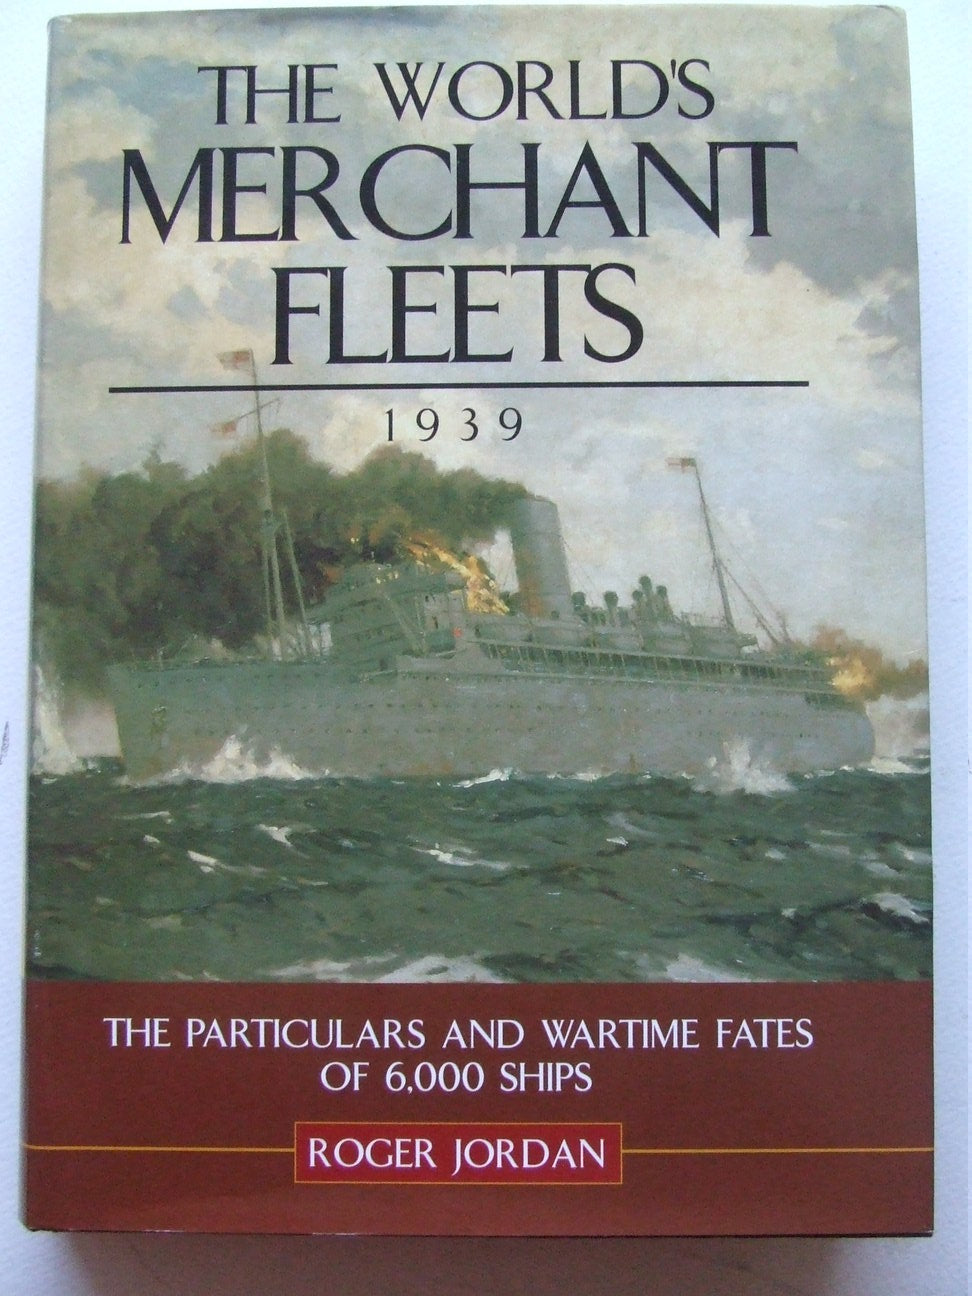 The World's Merchant Fleets 1939